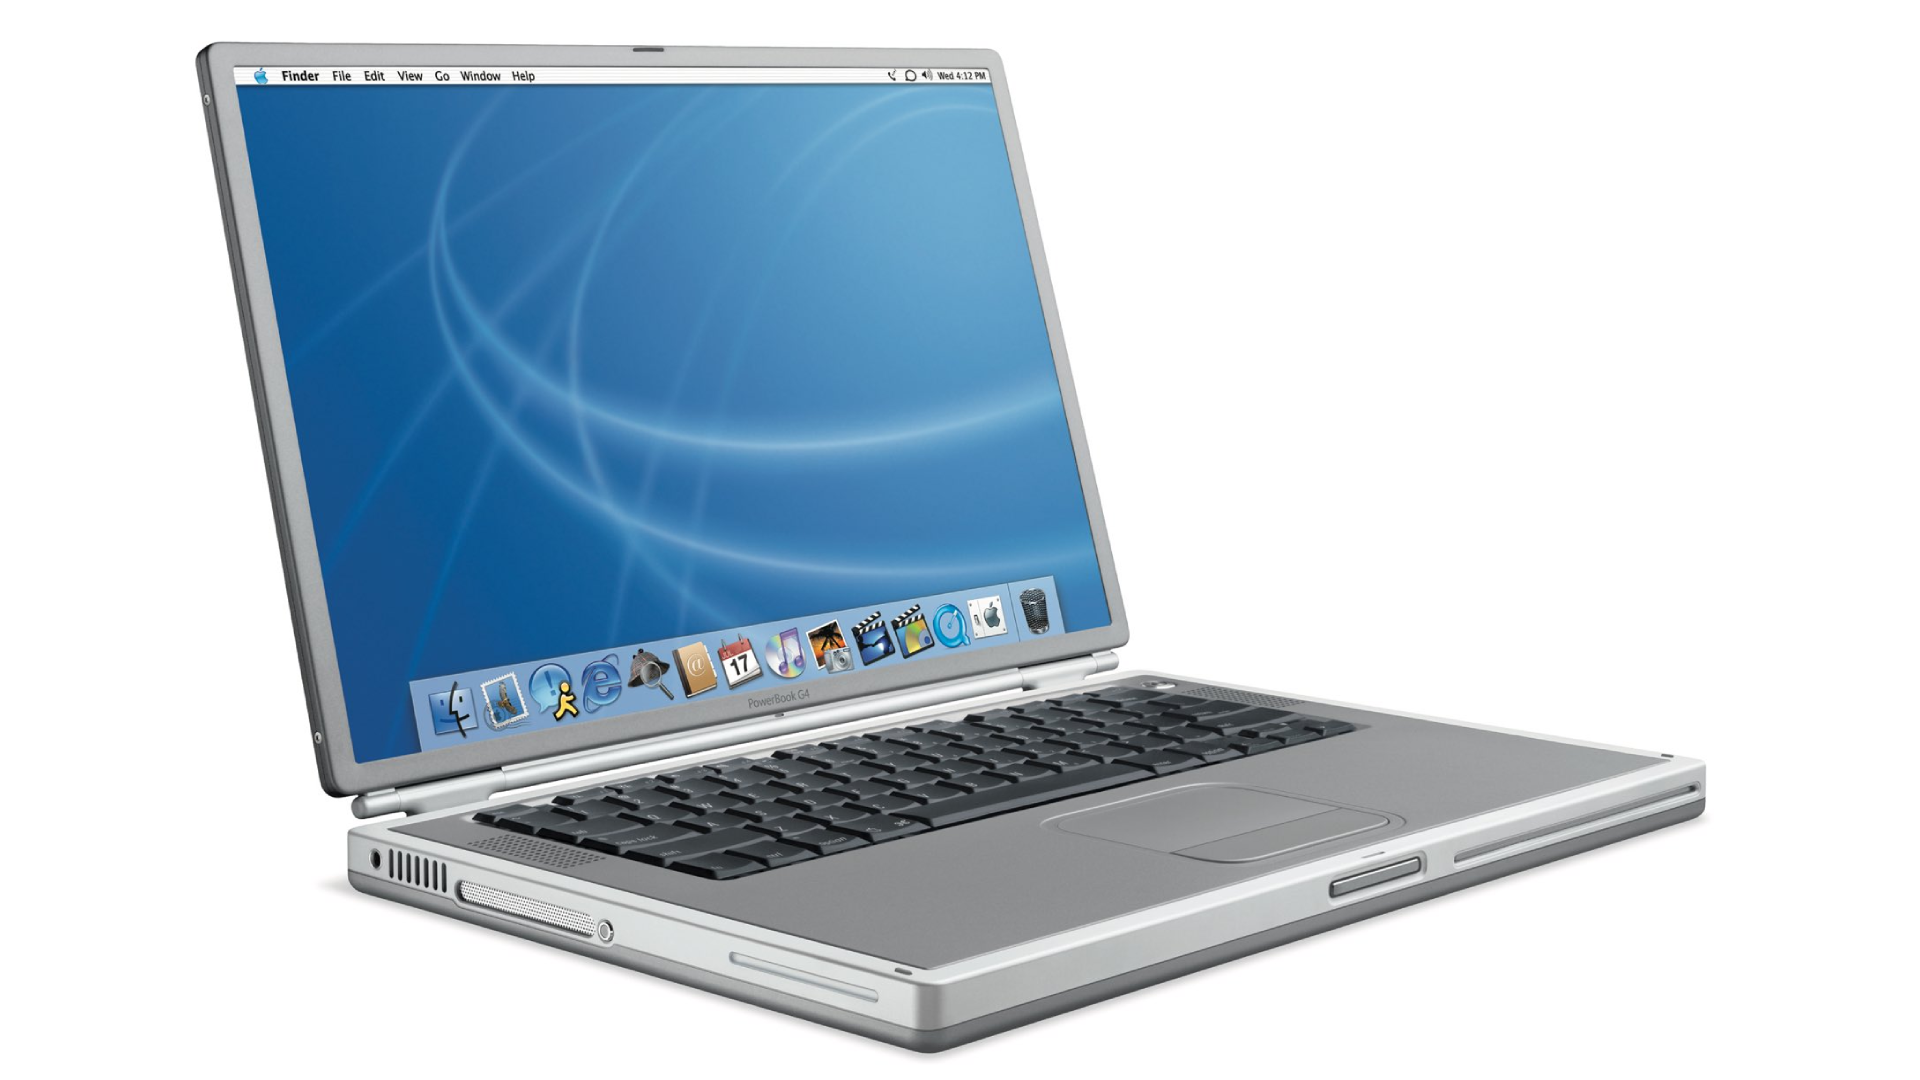 Apple's PowerBook G4 laptop from 2004